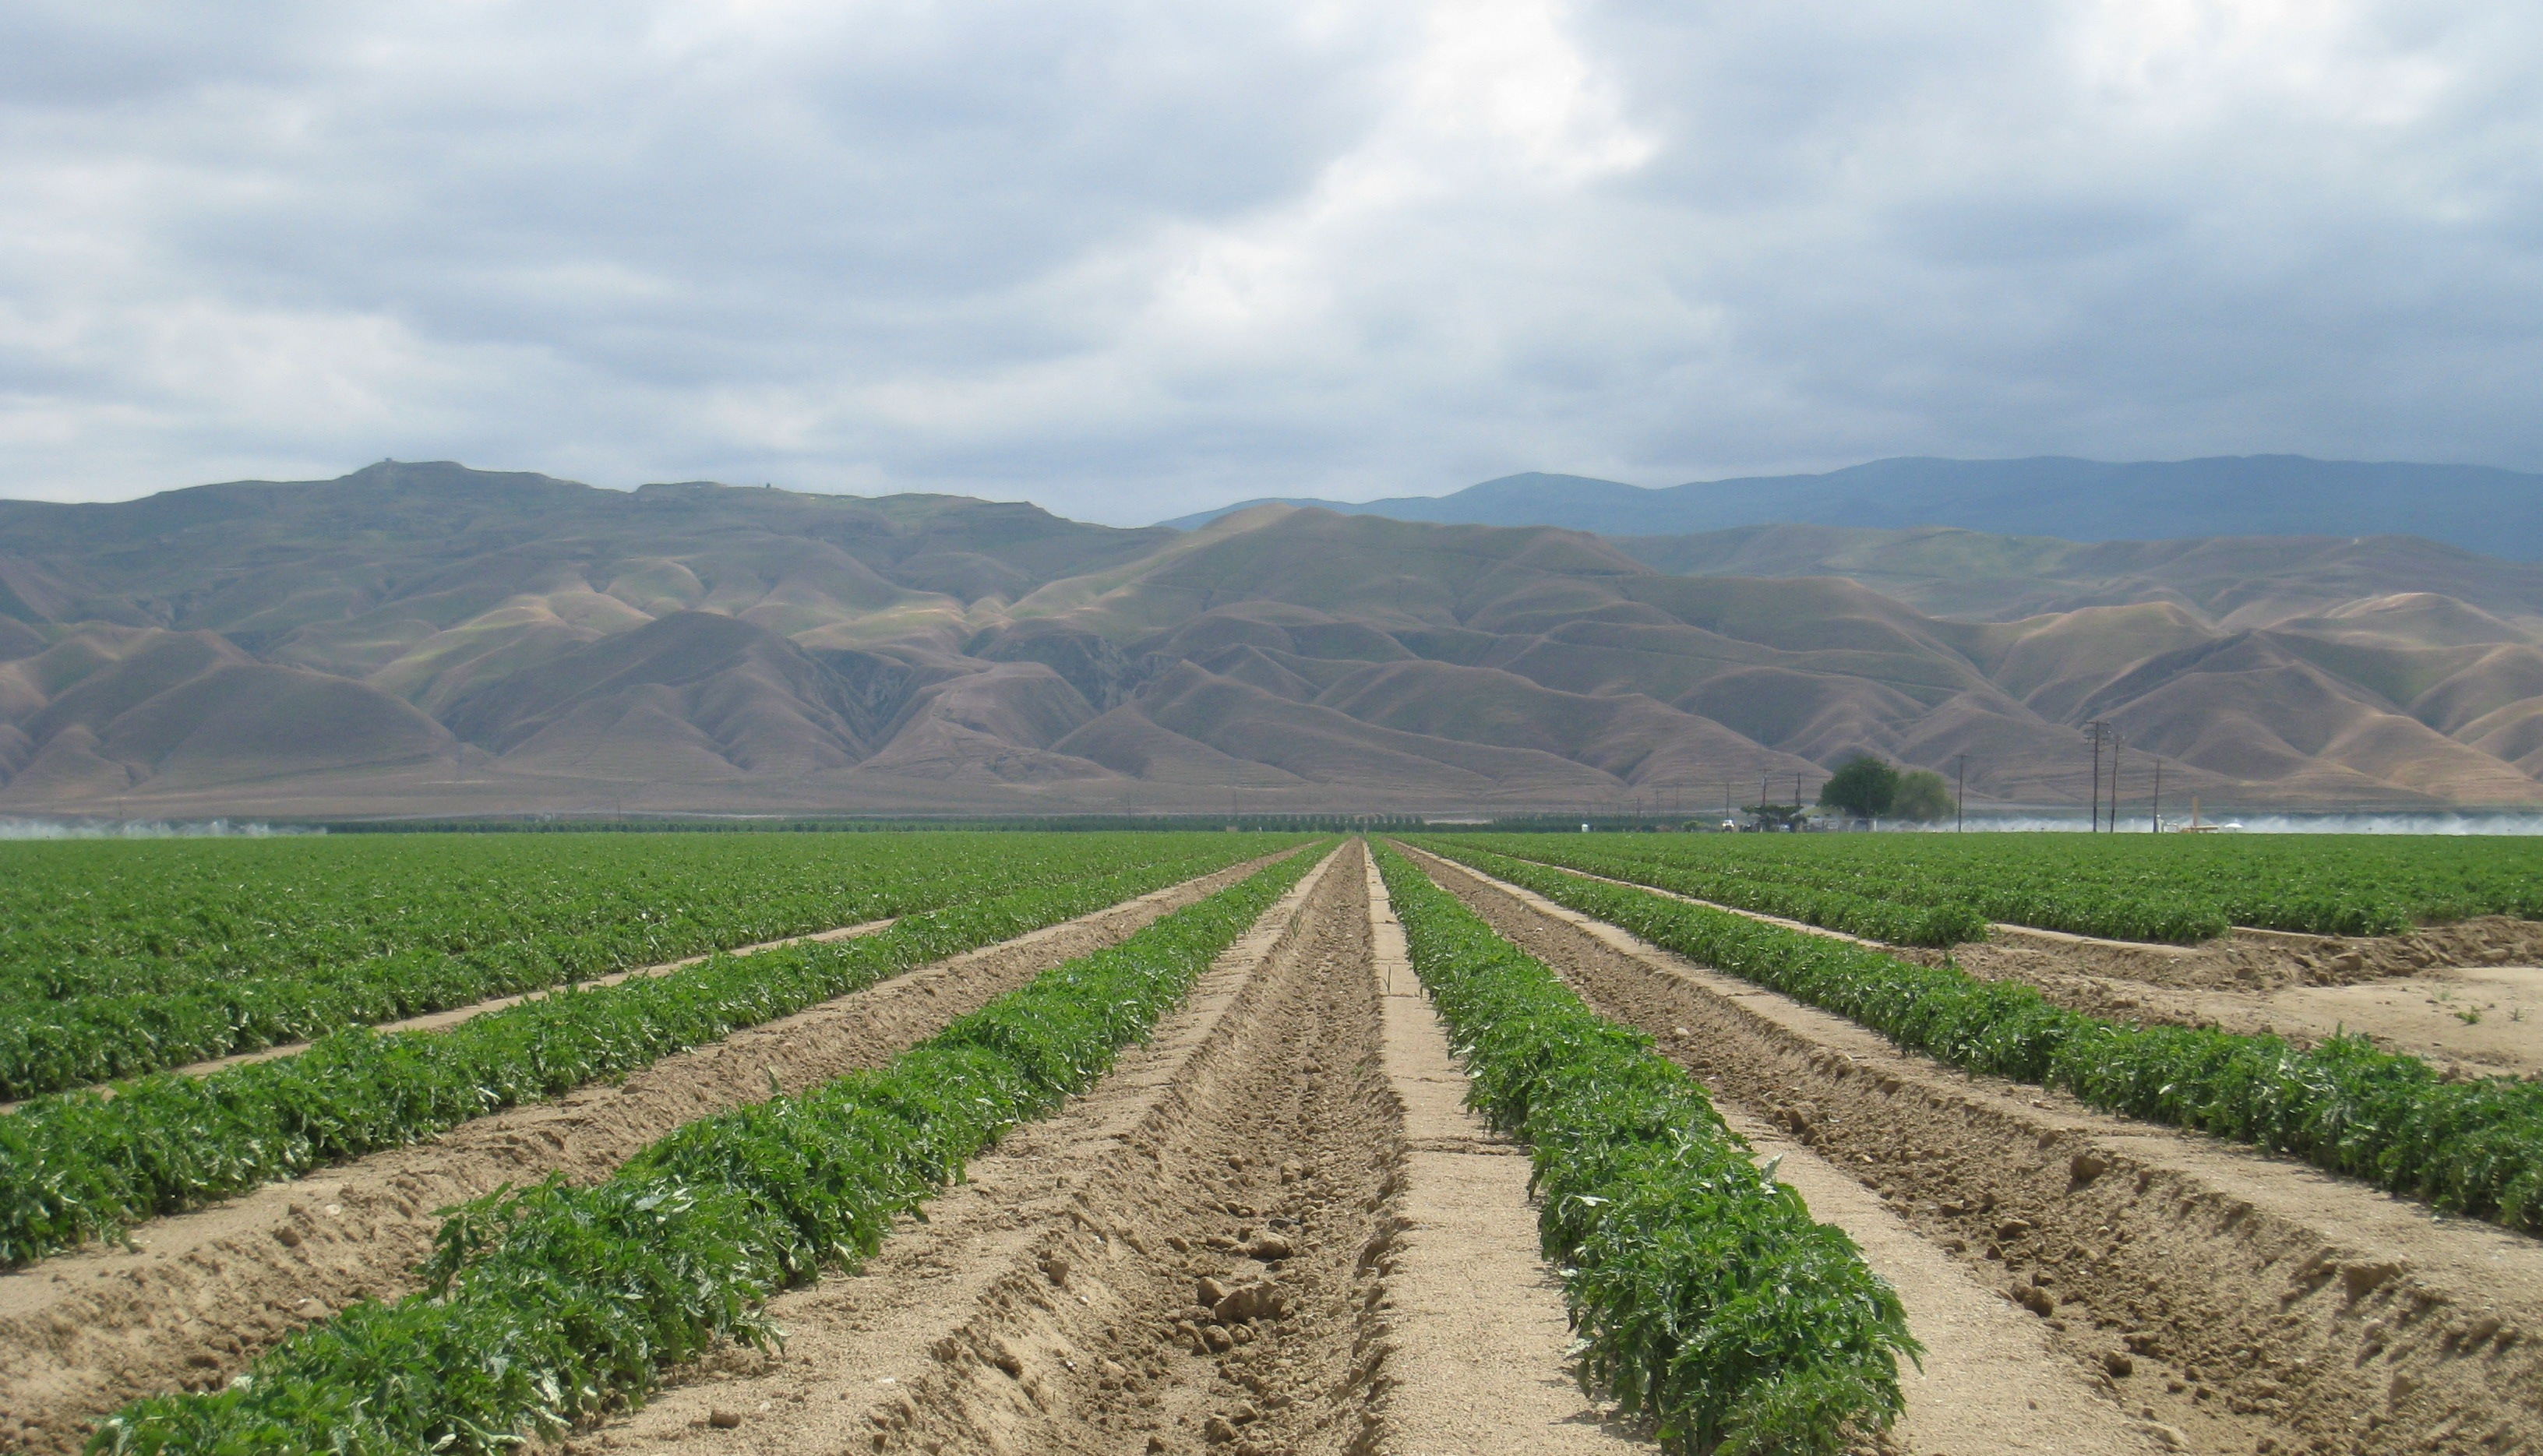 Views on Food: Outsmarting the Drought